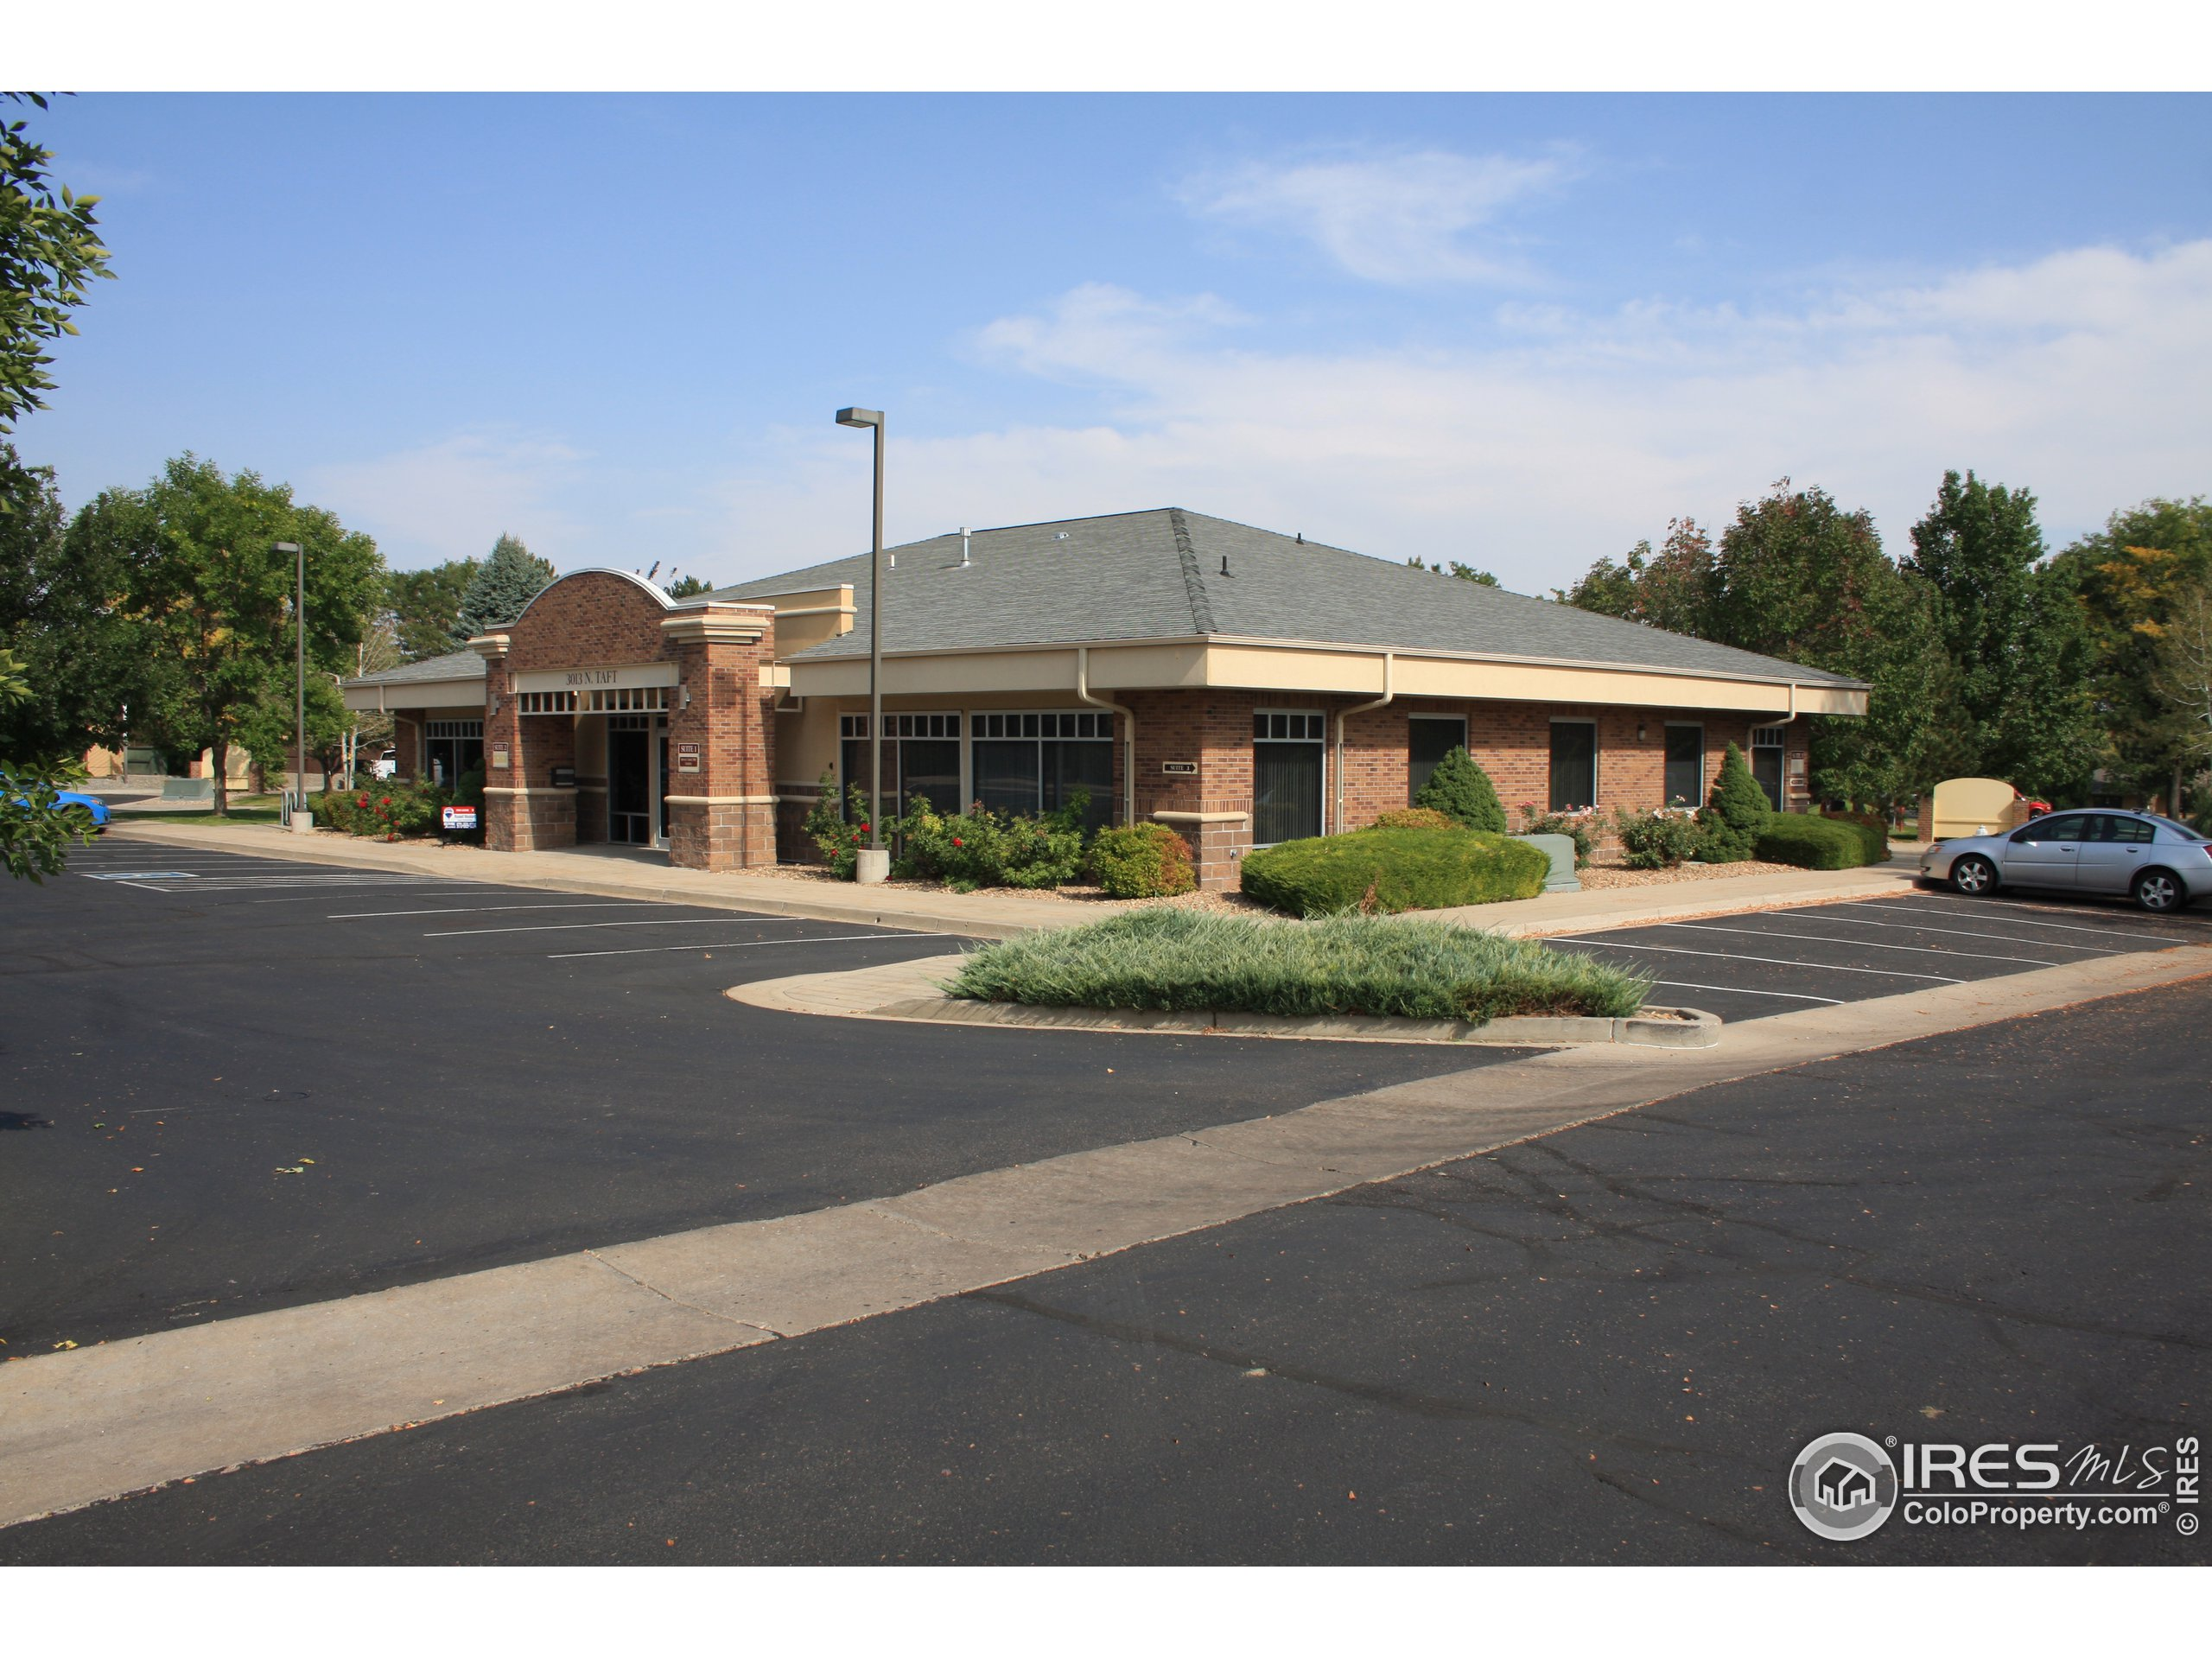 3013 N. Taft Avenue. Solid, well maintained building